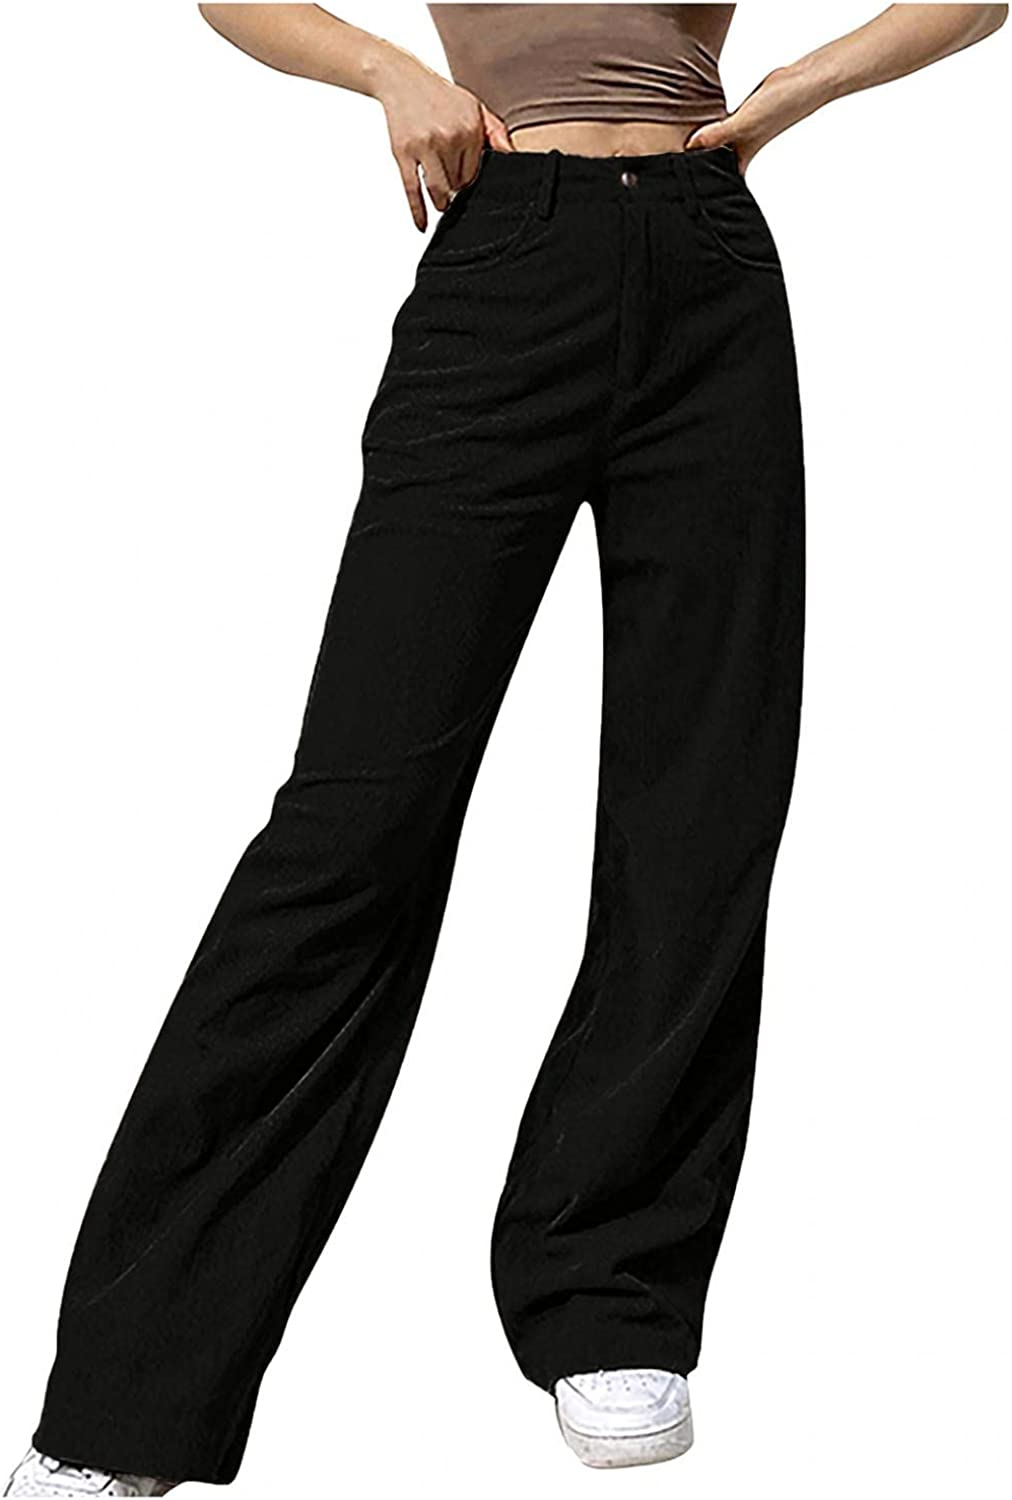 Women Mid Waist Corduroy Pants Solid Color Vintage Y2K Straight Leg Baggy Trousers Casual Hipster Streetwear